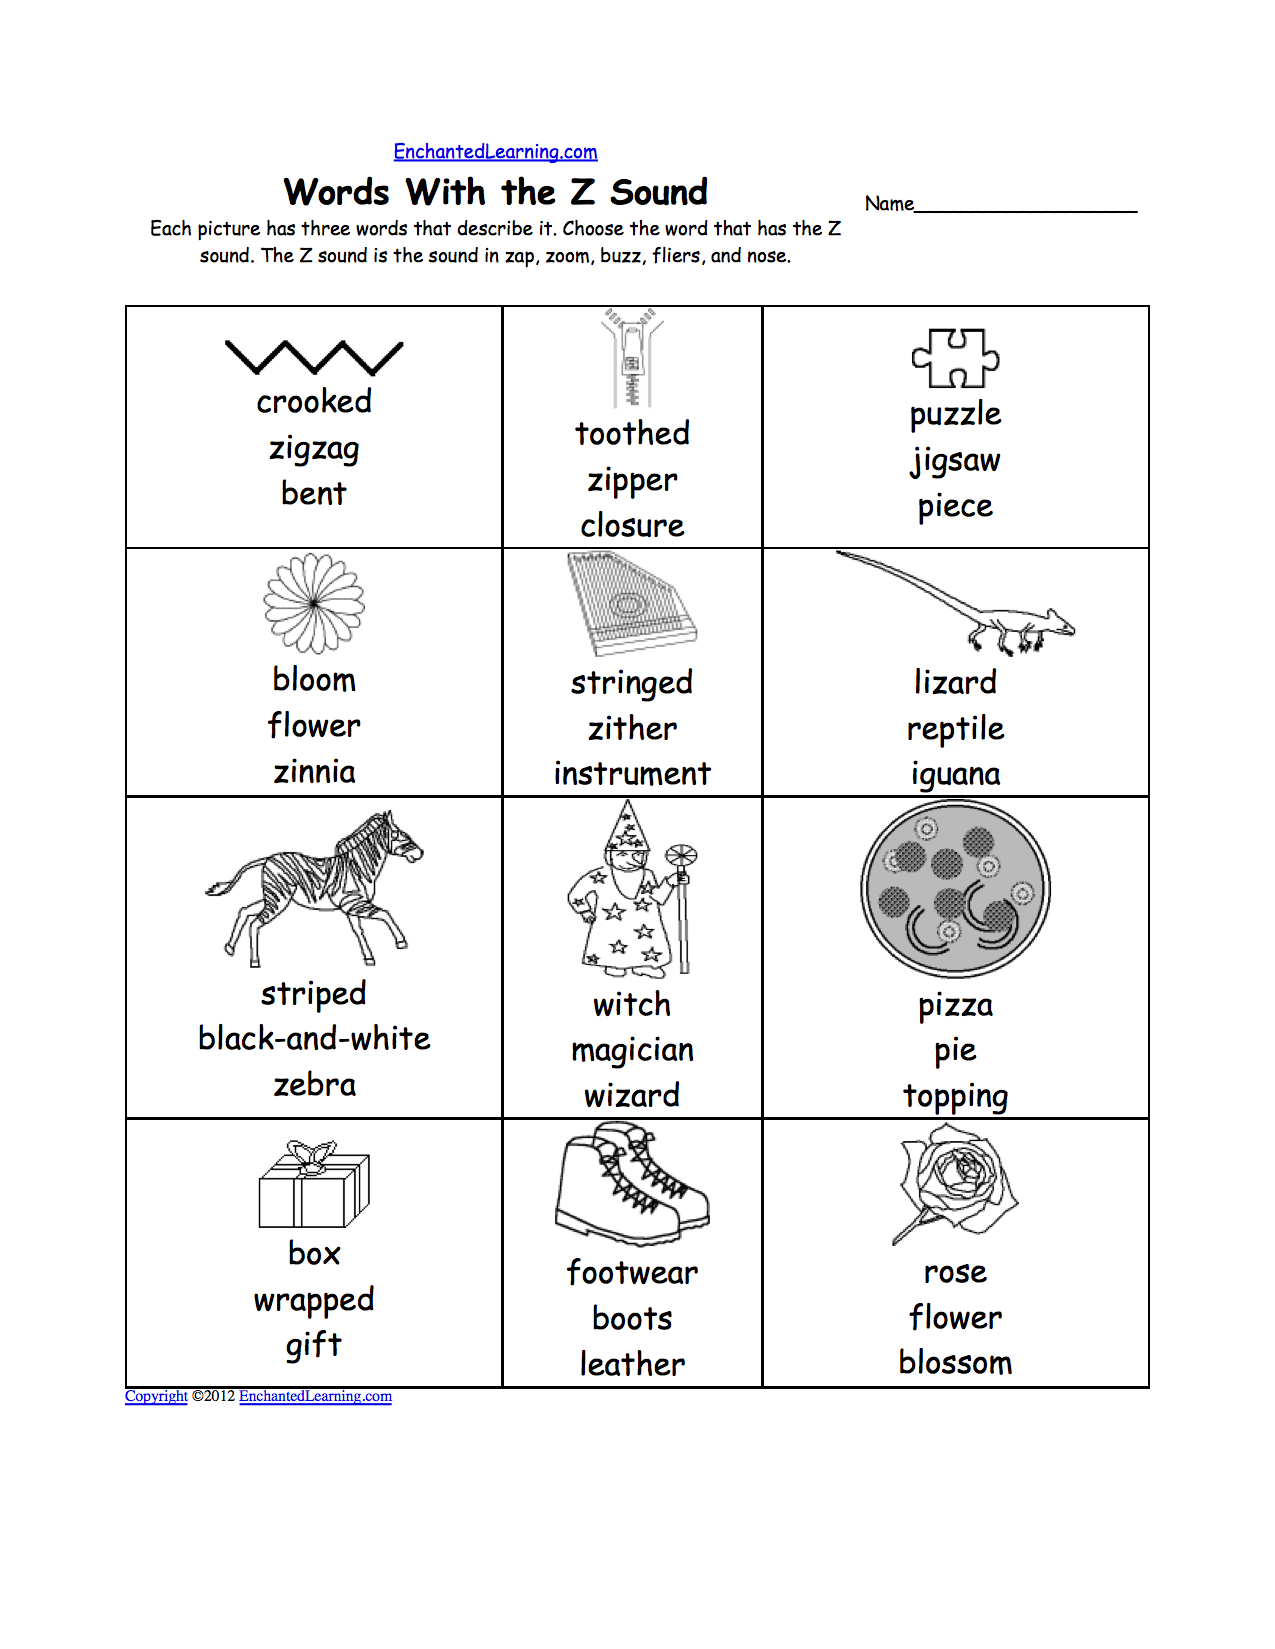 Aldiablosus  Outstanding Phonics Worksheets Multiple Choice Worksheets To Print  With Marvelous Phonics Worksheets Multiple Choice Worksheets To Print  Enchantedlearningcom With Nice Free First Grade Phonics Worksheets Also Number Sense And Operations Worksheets In Addition Letter Ii Worksheets And Simple Subject And Simple Predicate Worksheets With Answers As Well As Menu Math Worksheet Additionally Tall Tales Worksheets From Enchantedlearningcom With Aldiablosus  Marvelous Phonics Worksheets Multiple Choice Worksheets To Print  With Nice Phonics Worksheets Multiple Choice Worksheets To Print  Enchantedlearningcom And Outstanding Free First Grade Phonics Worksheets Also Number Sense And Operations Worksheets In Addition Letter Ii Worksheets From Enchantedlearningcom